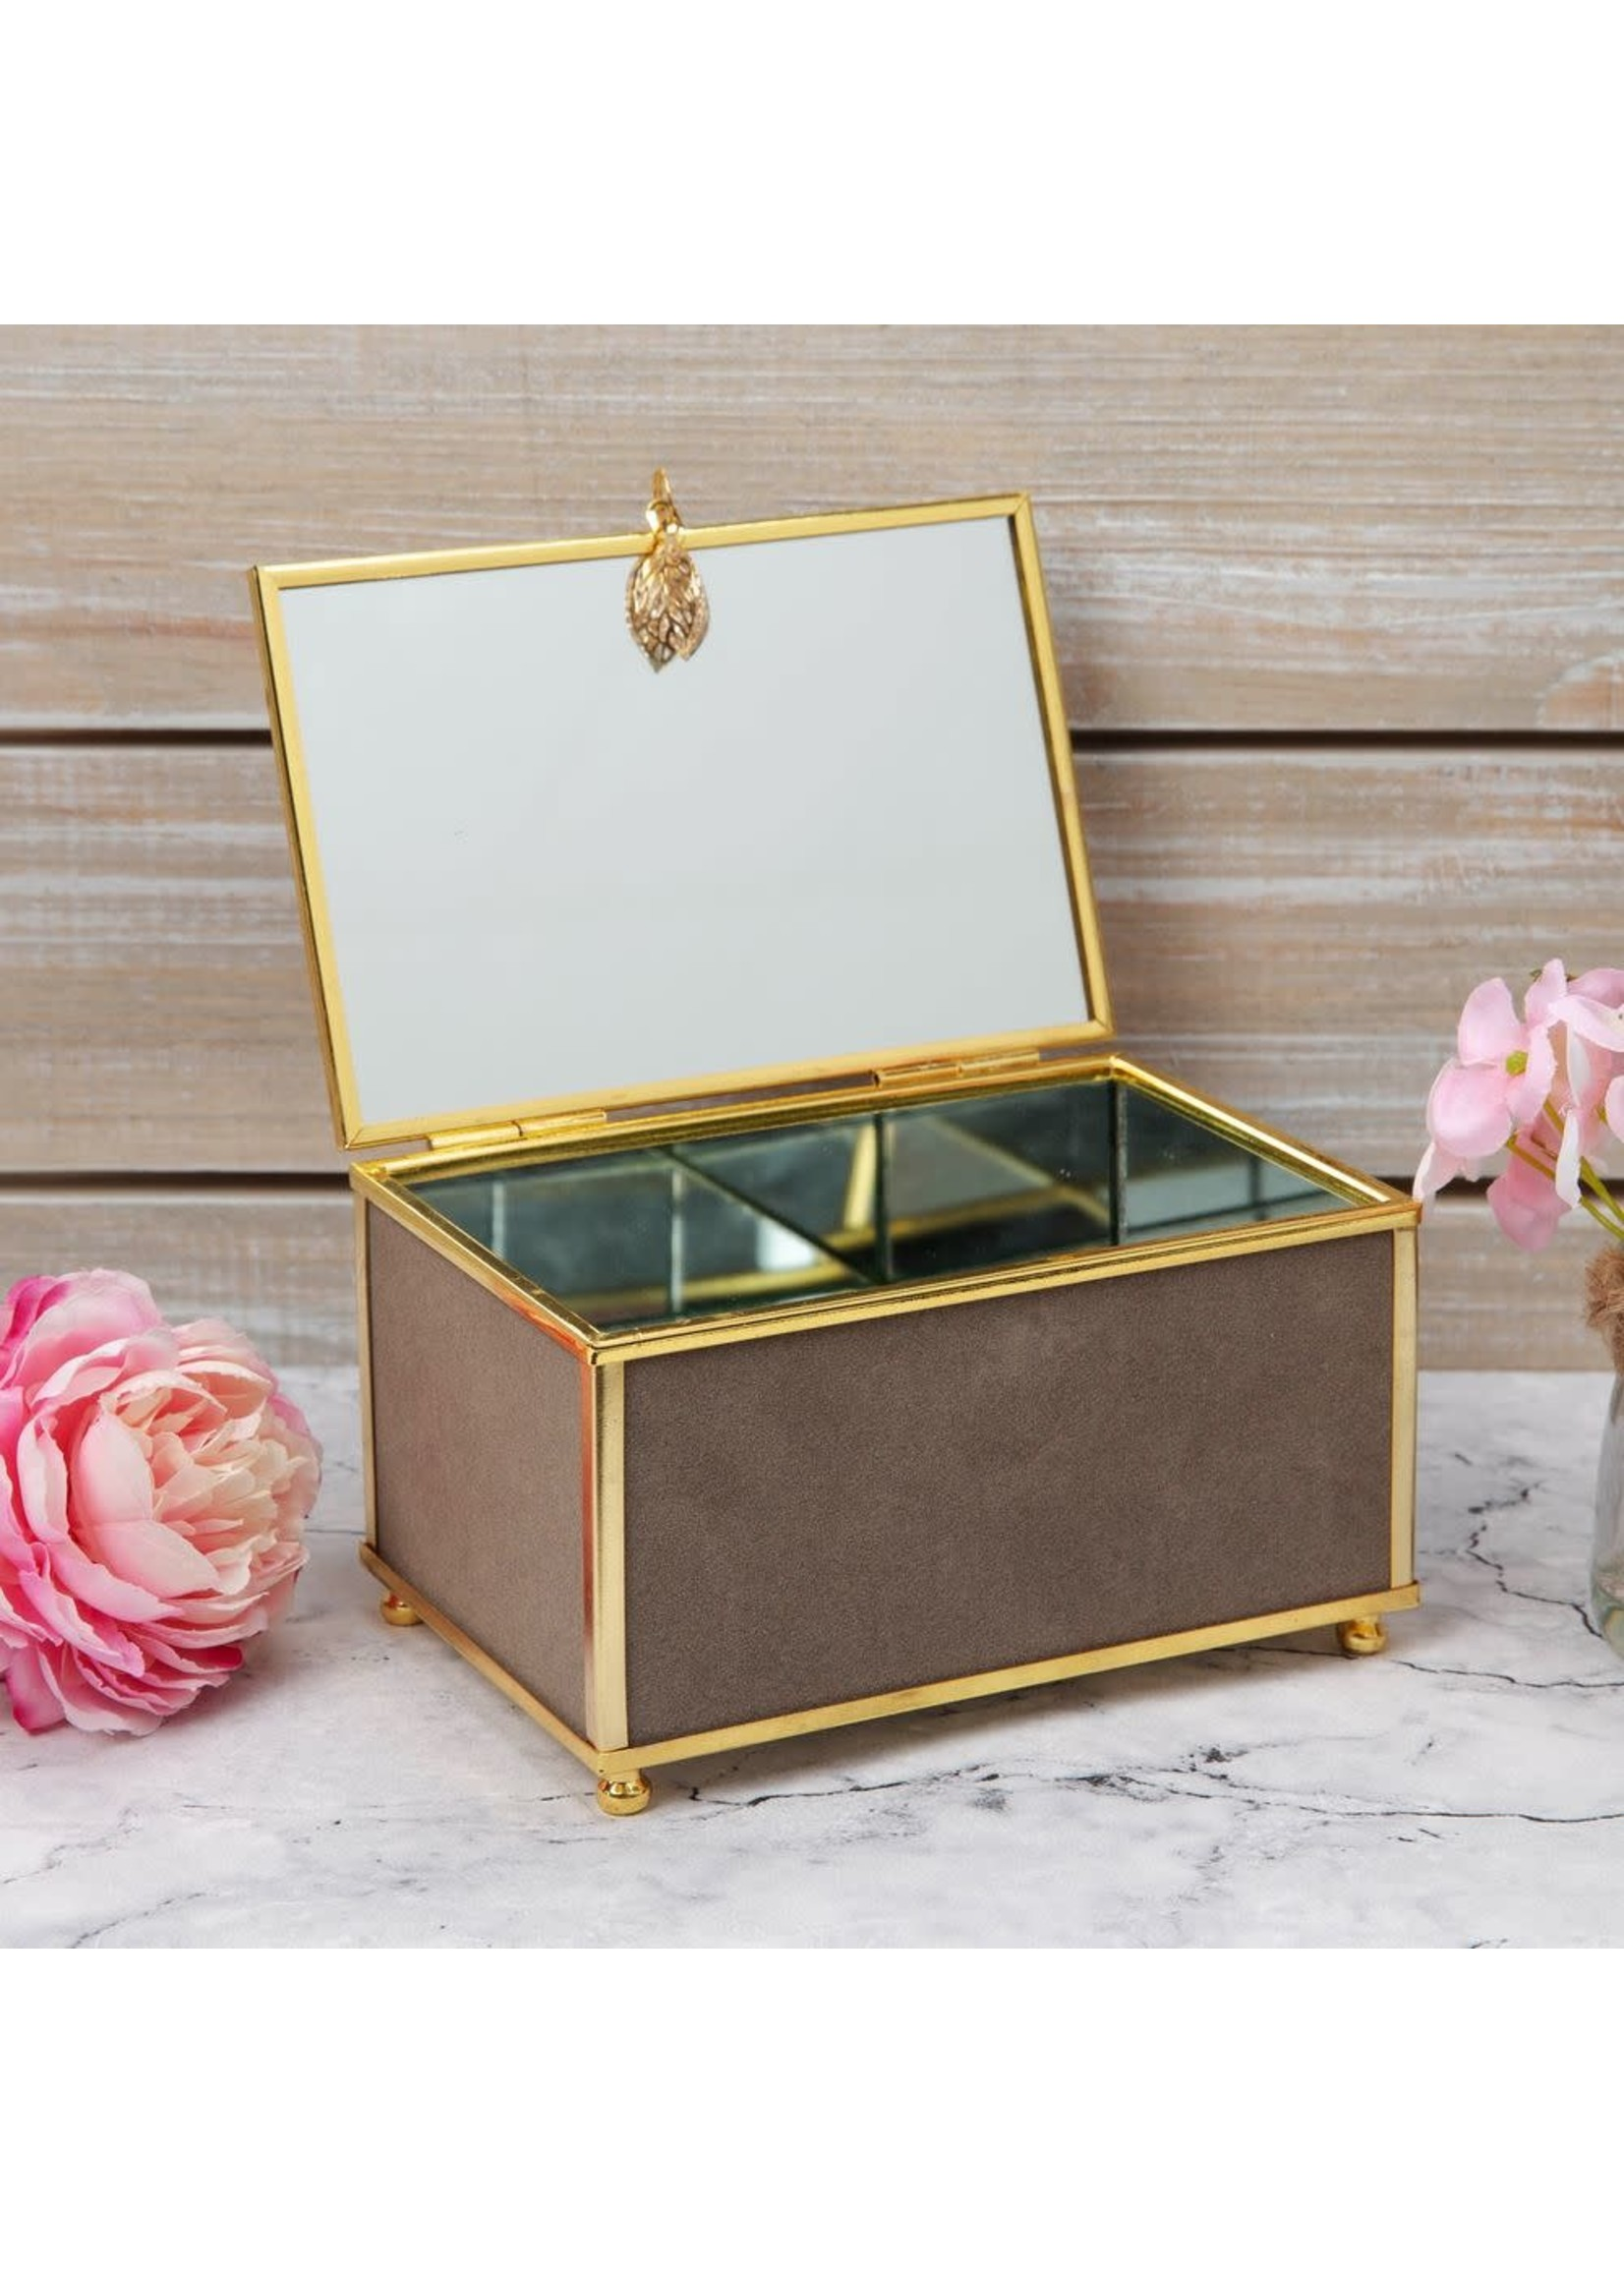 SOPHIA GREY JEWELLERY BOX WITH GOLD LEAF DETAIL - SMALL